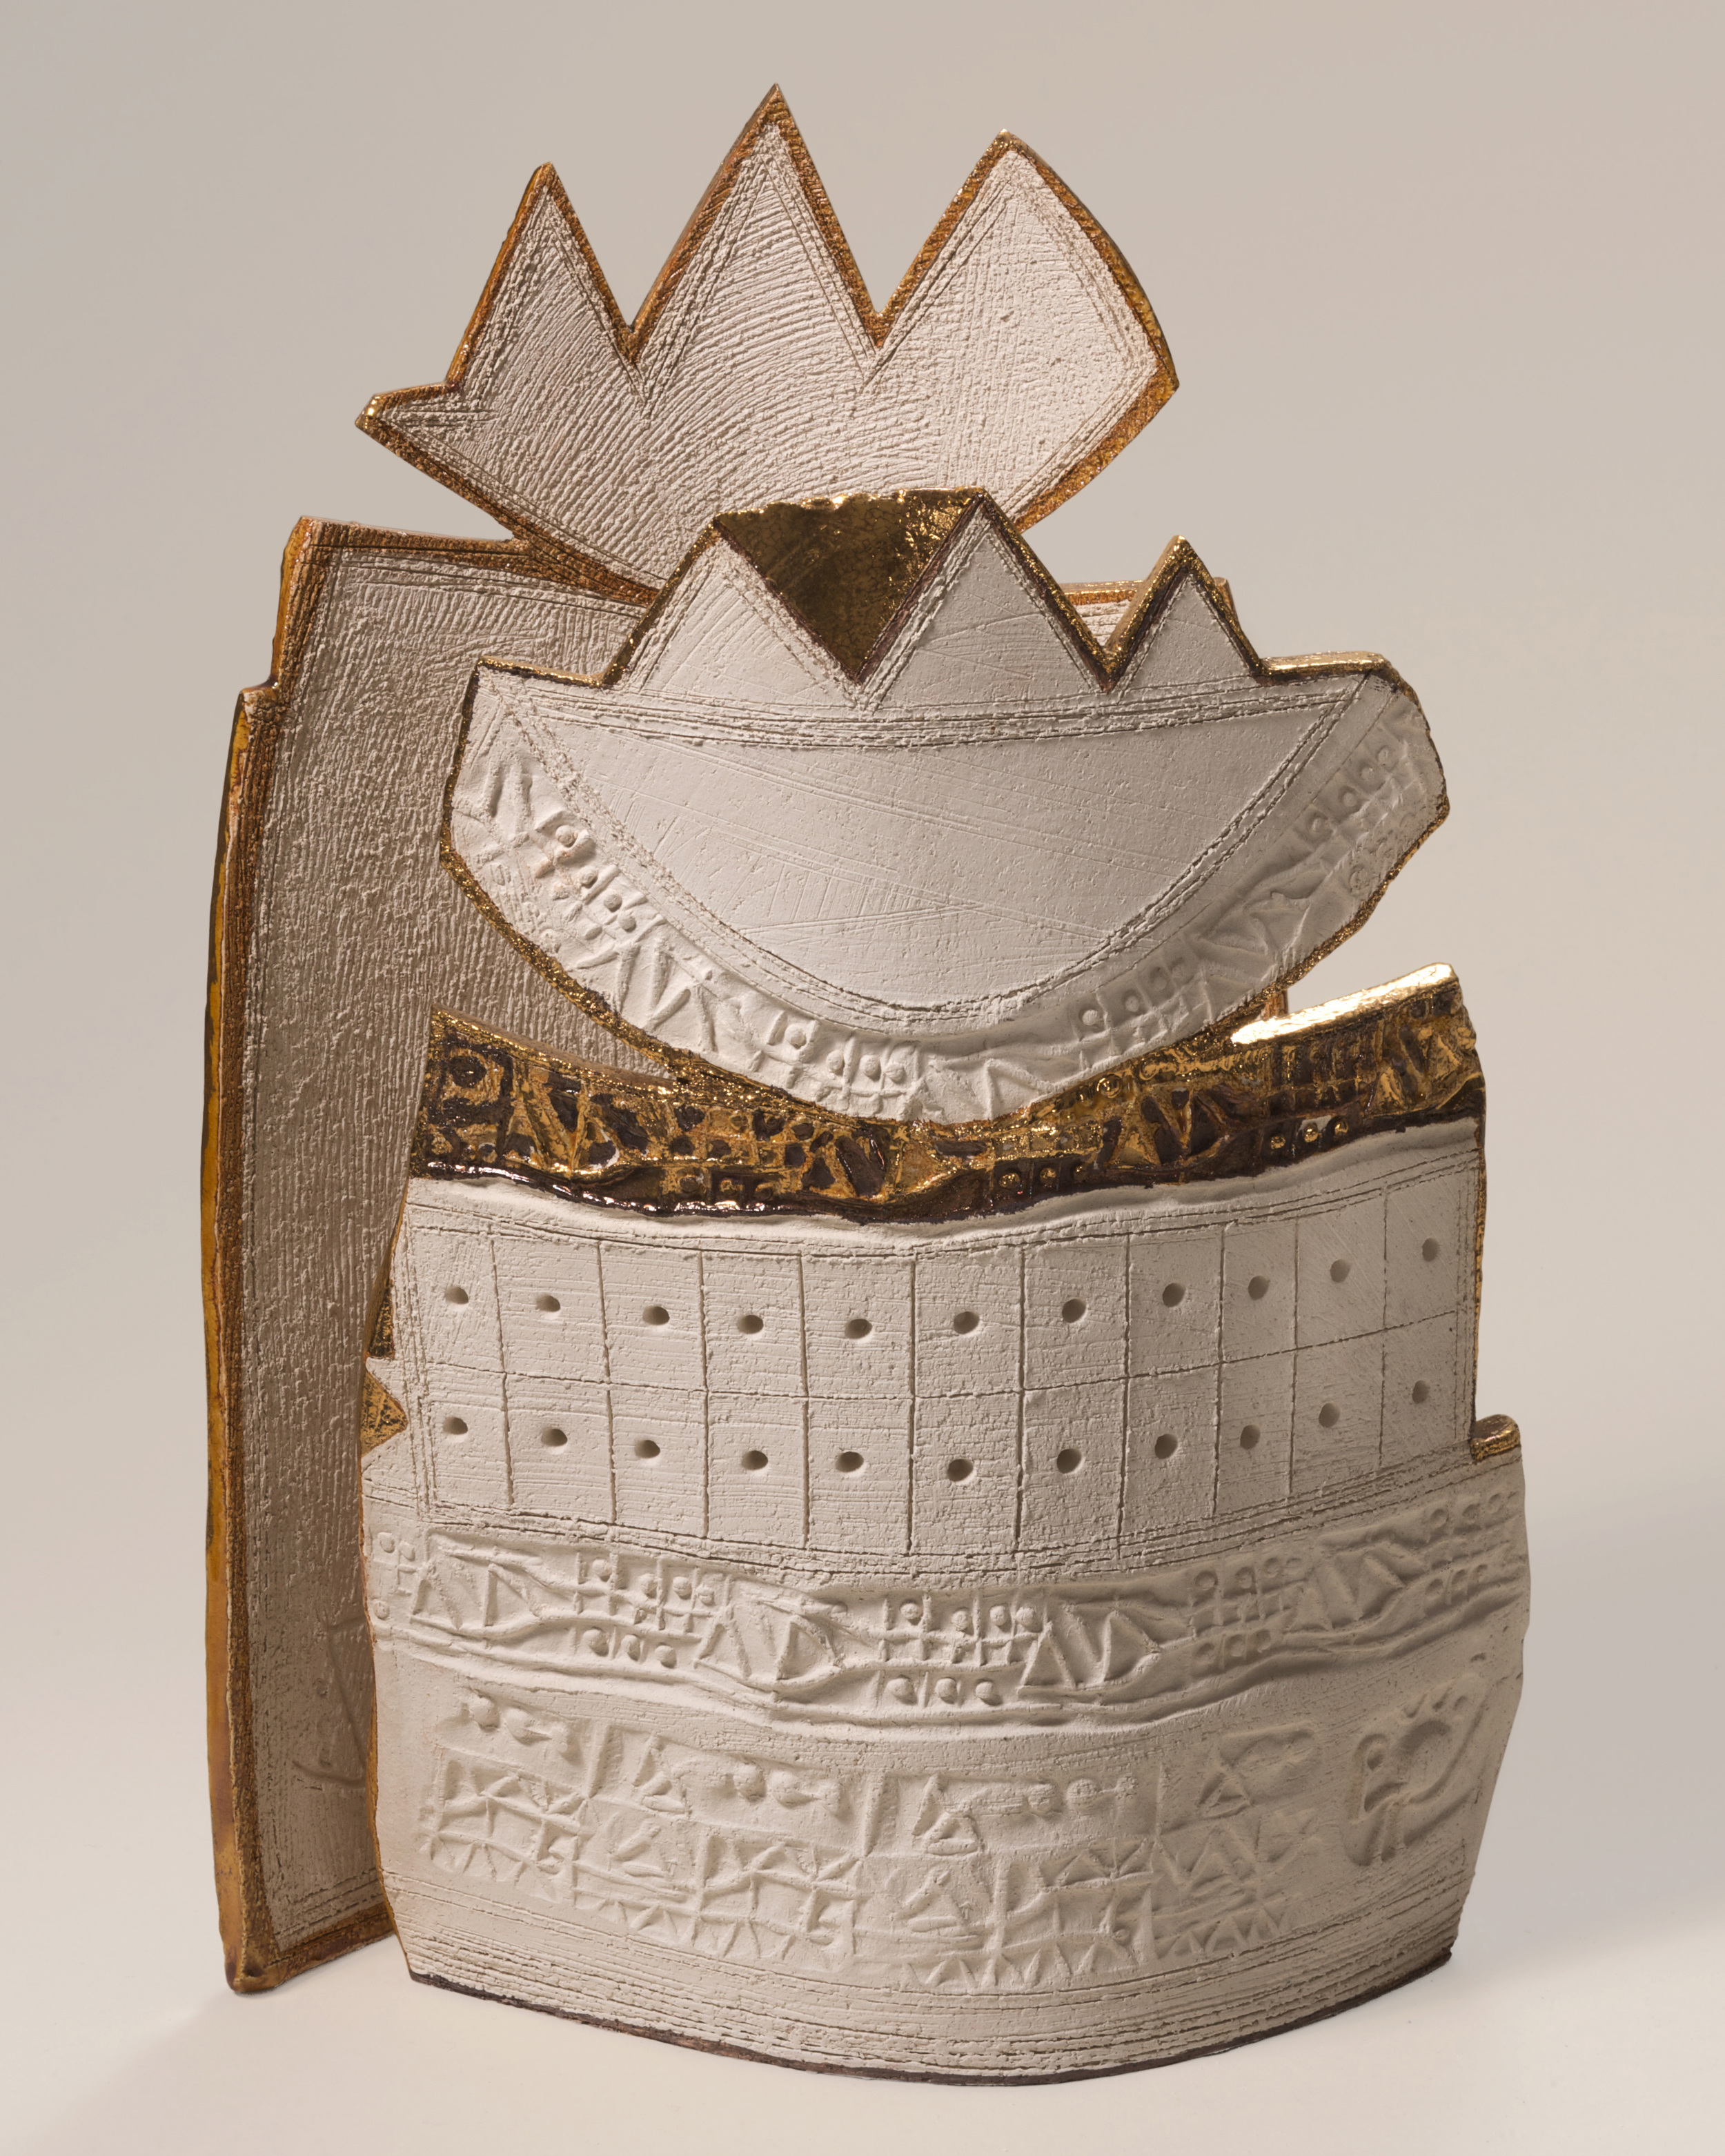 Letters from Dijla and Furat   Earthstone and gold 32x22cm 2004  Hussain Harba Collection  Italy